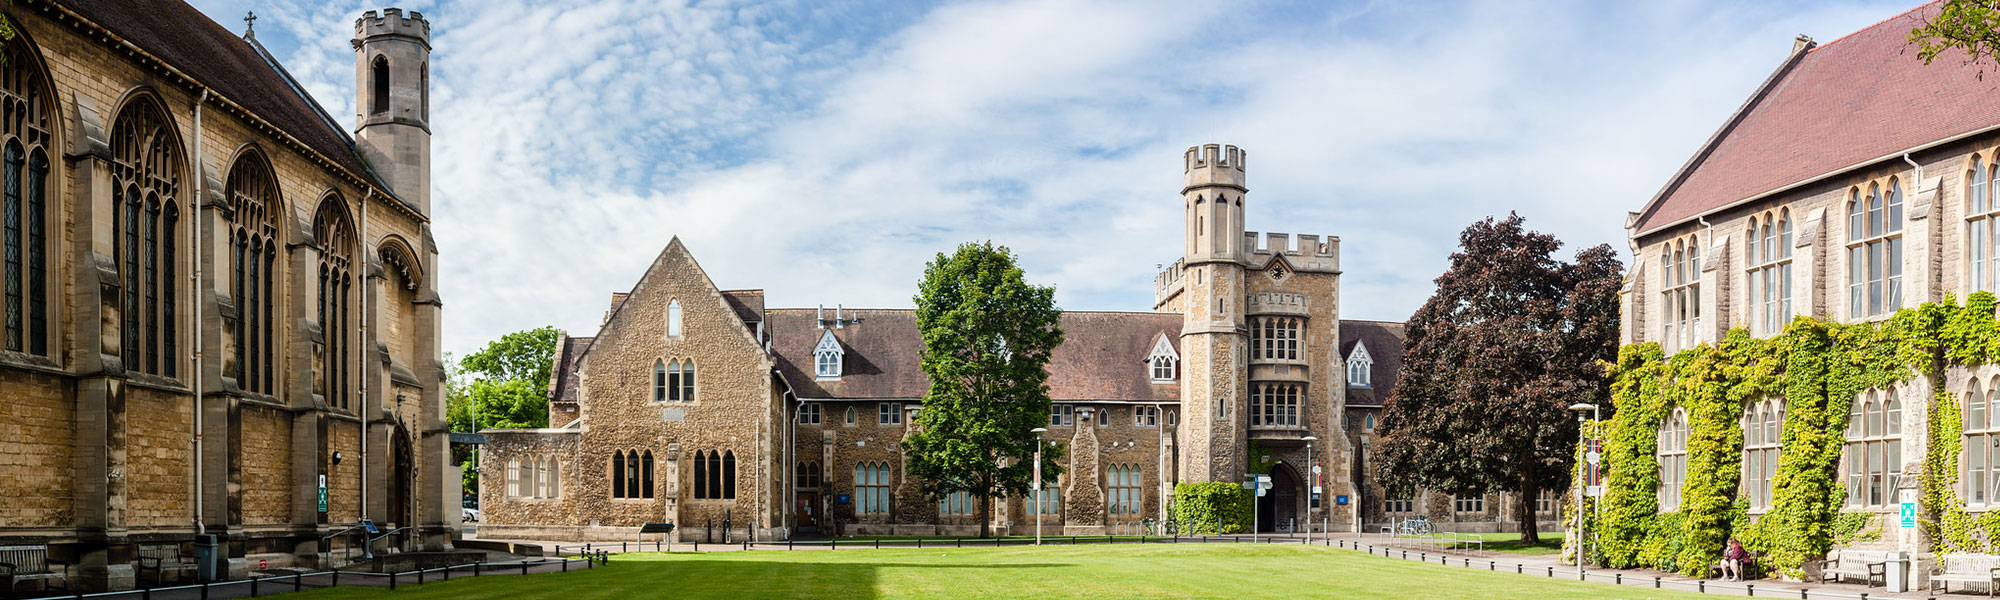 Image of Francis Close Hall Campus